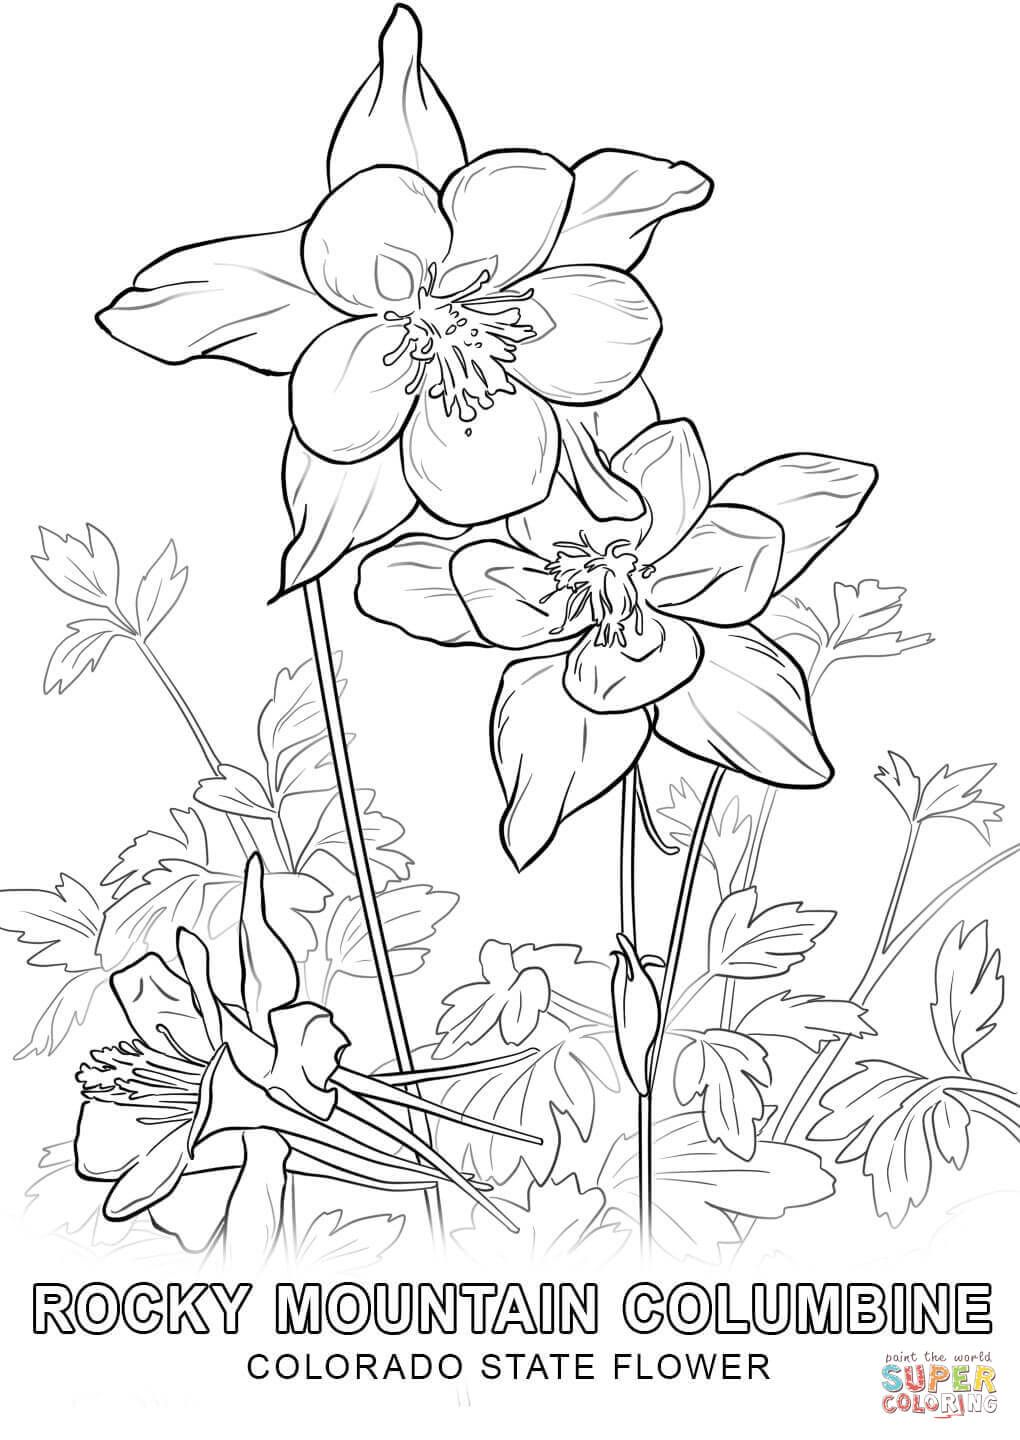 Colorado State Flower coloring page | Free Printable Coloring Pages ...